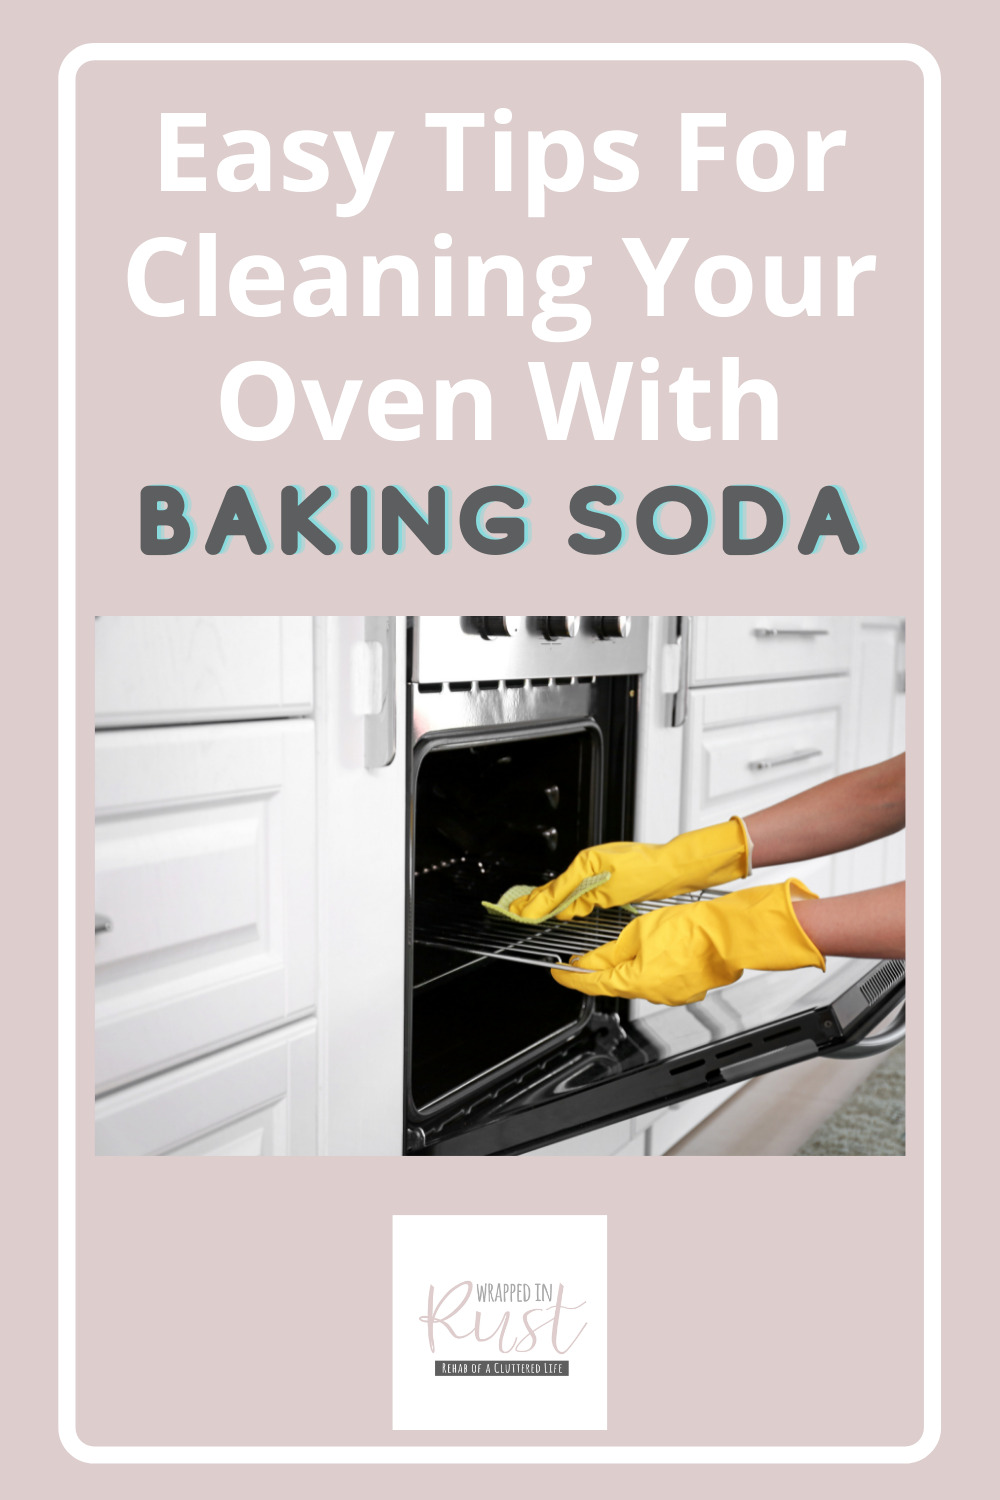 Wrappedinrust.com is filled full of genius cleaning ideas for all of your toughest messes and stains. Get ready for a big cleaning job! Find out the easiest way to clean your oven out--by using baking soda!